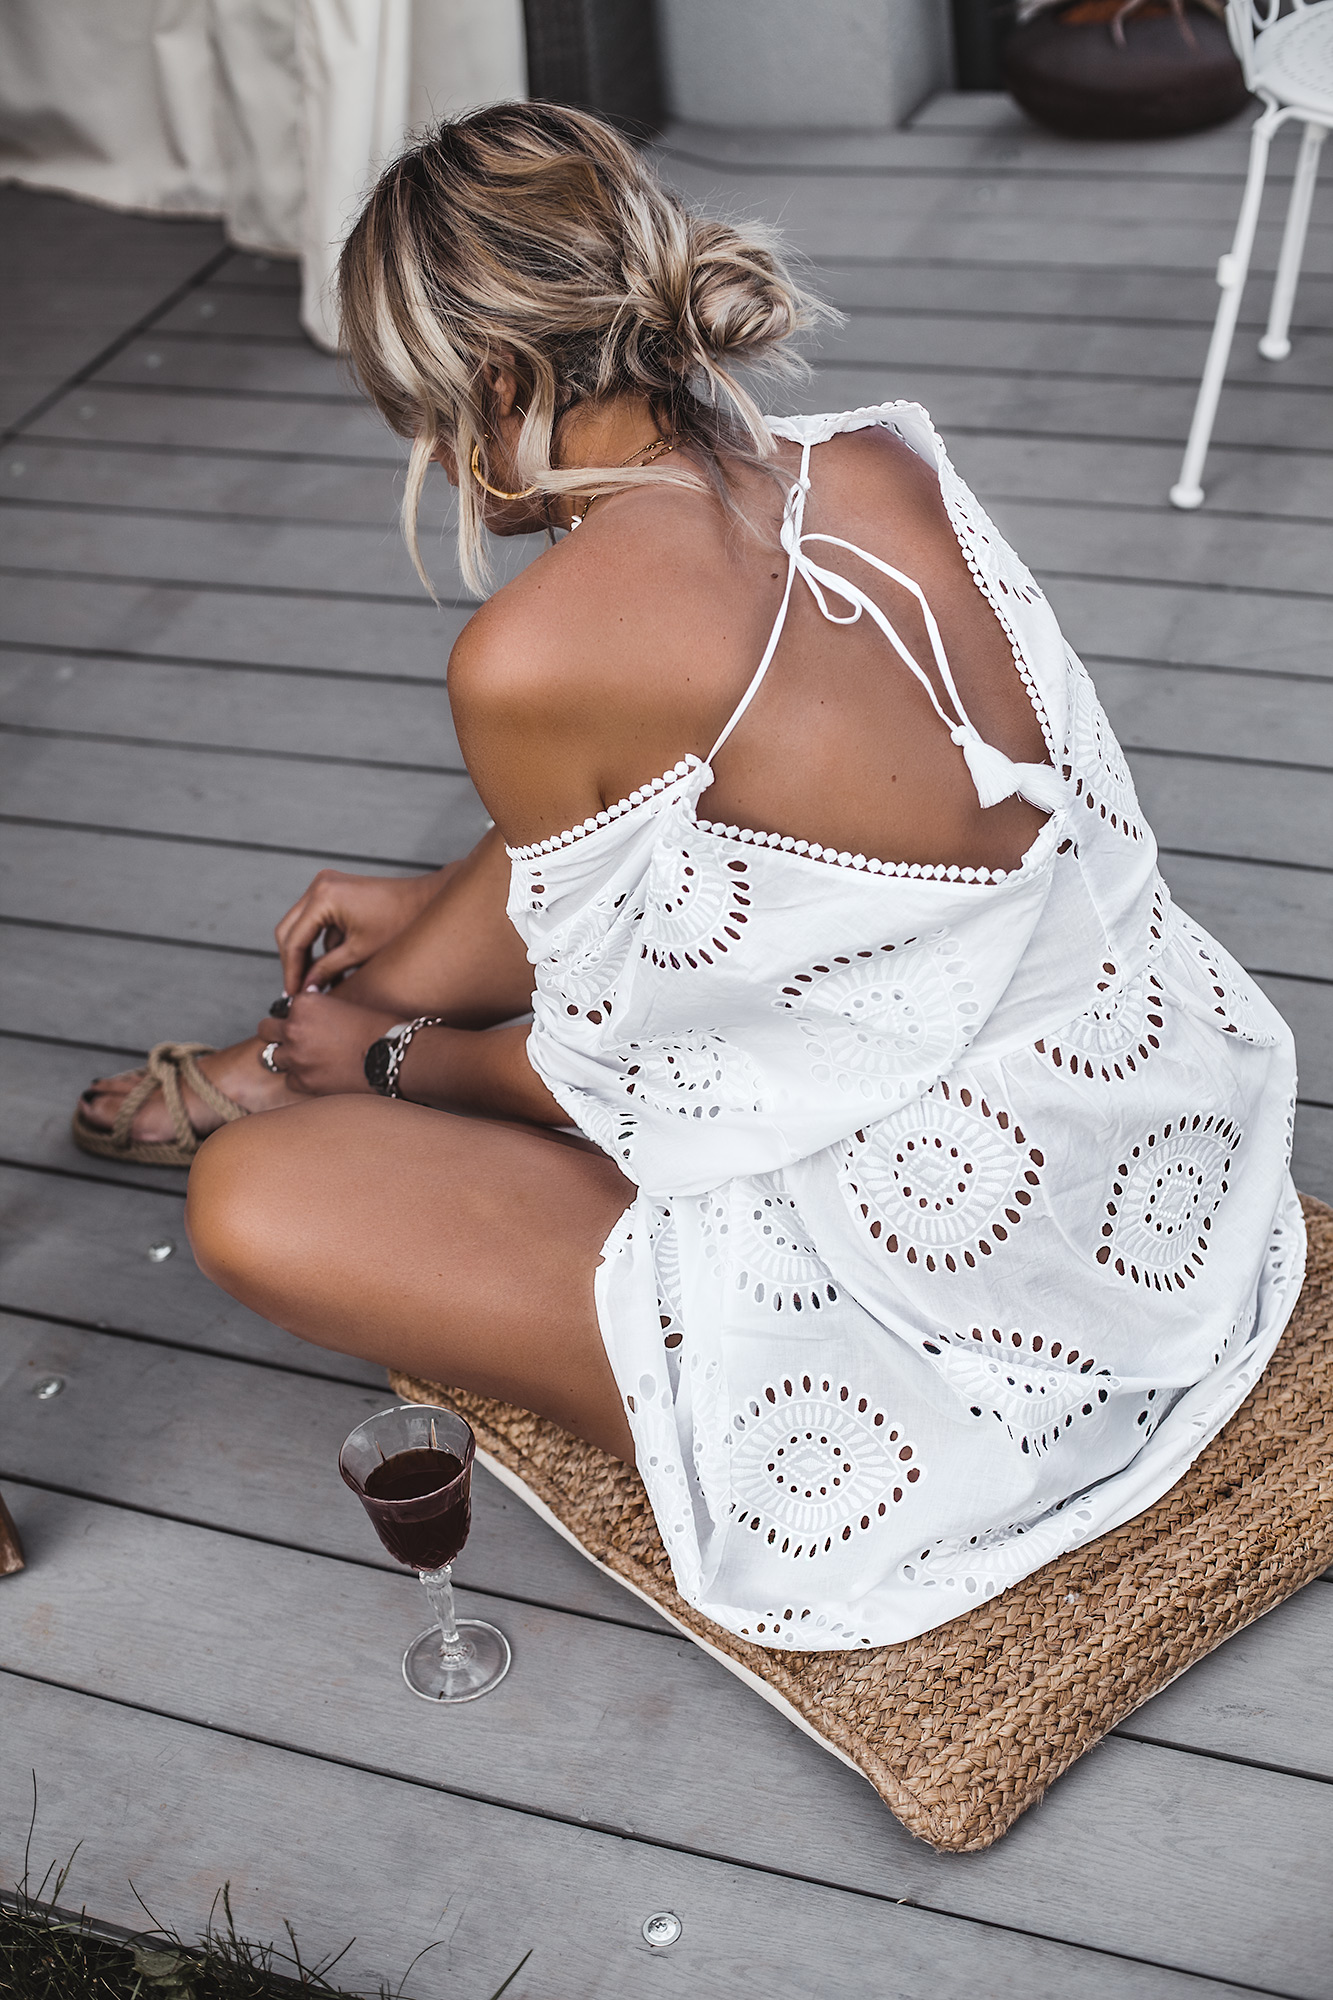 The best summer dress is always a white dress. If it is a boho beach style dress even better. If it is also a Broderie Anglaise dress with a beautiful open back, pom poms, and a perfect decollete, then it is the ultimate dress for this summer. And it's only under 40 €. White dress, boho rope flat sandals.